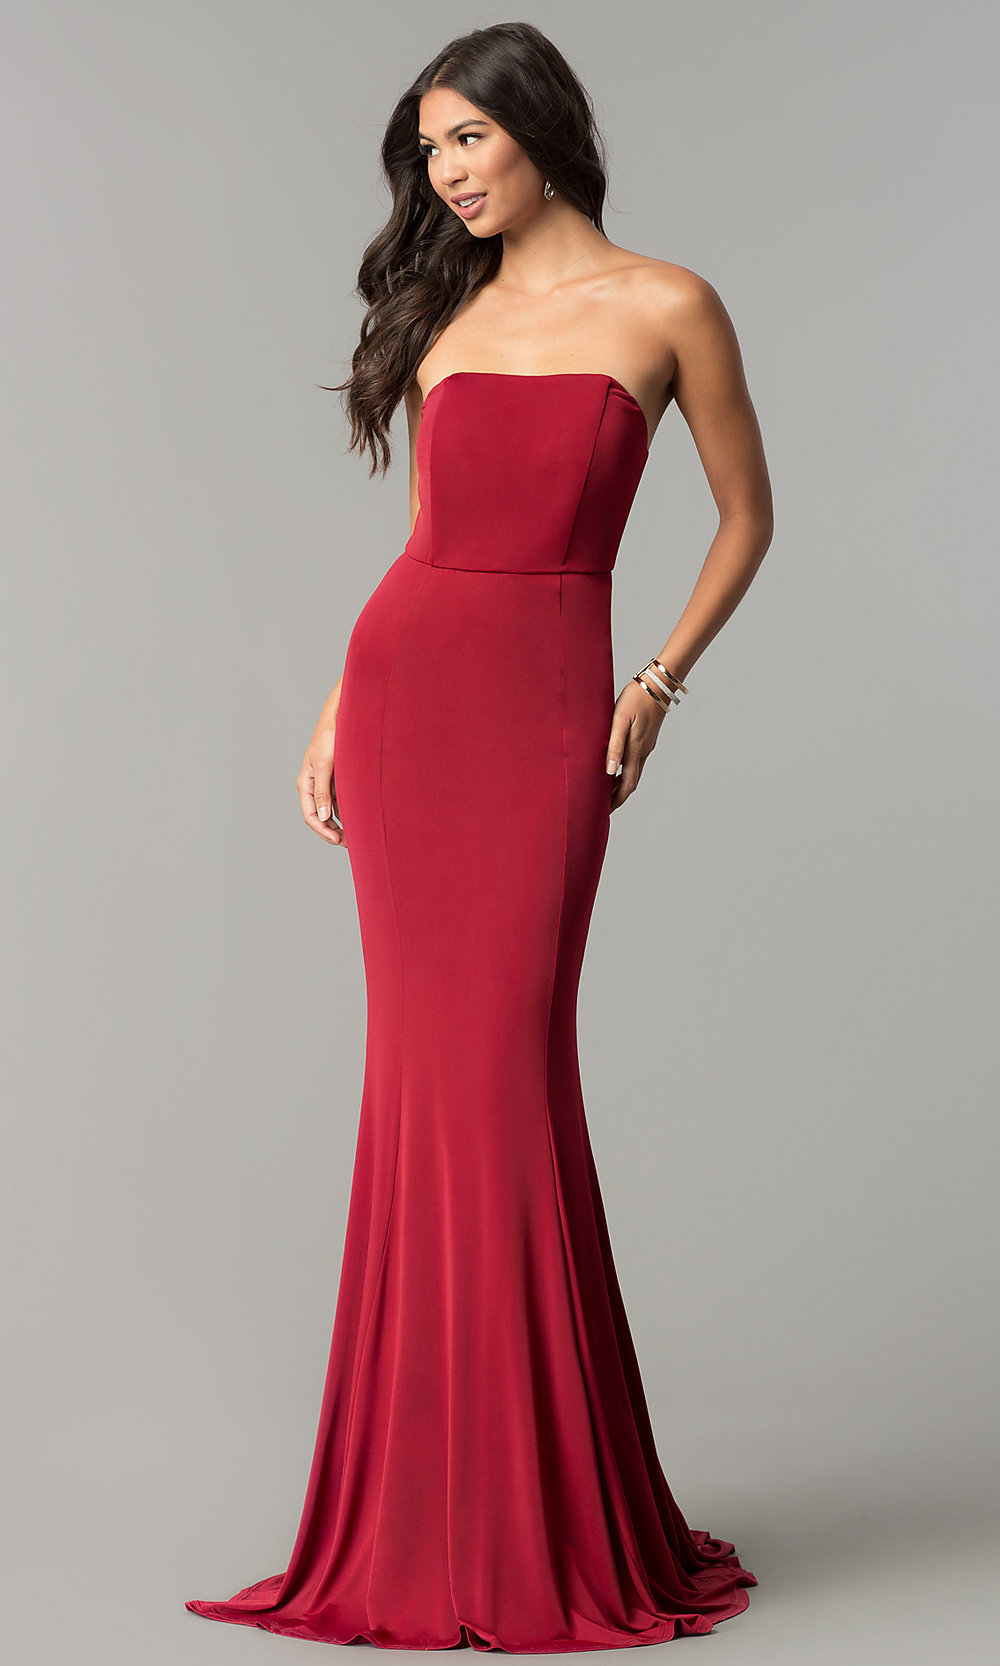 Long Strapless Jersey Prom Dress With Train Promgirl